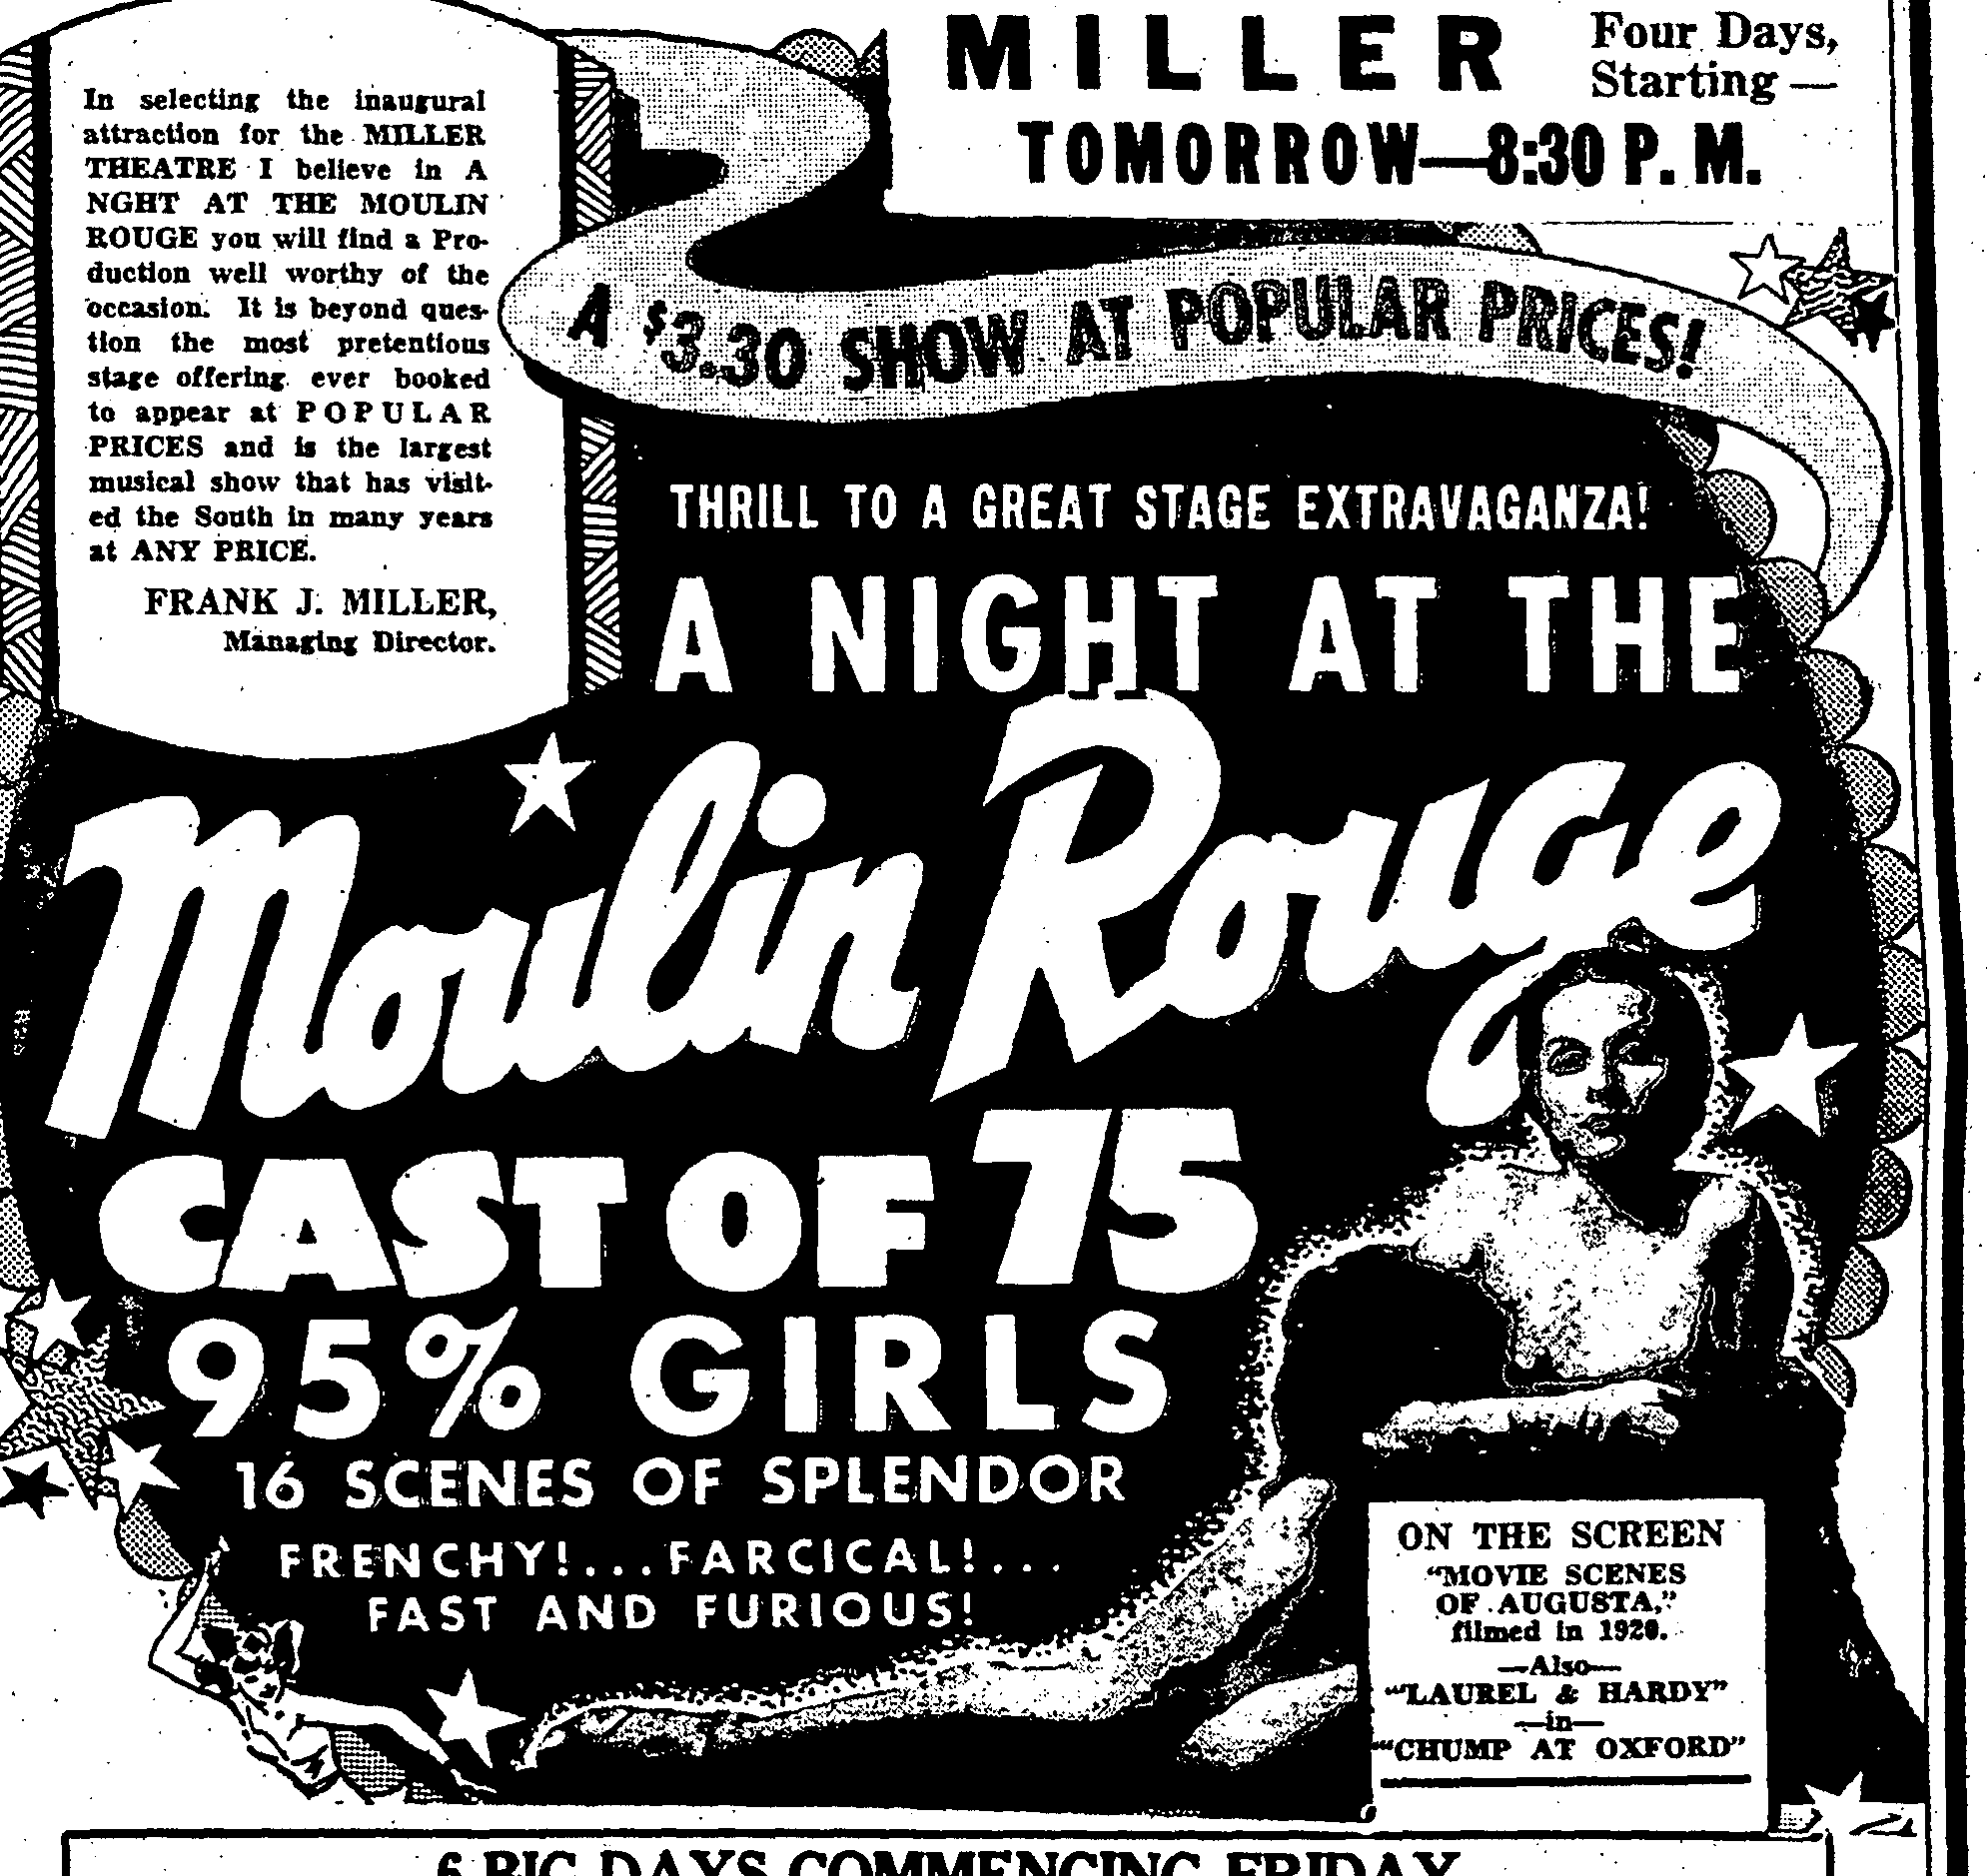 Ad for Premier Show